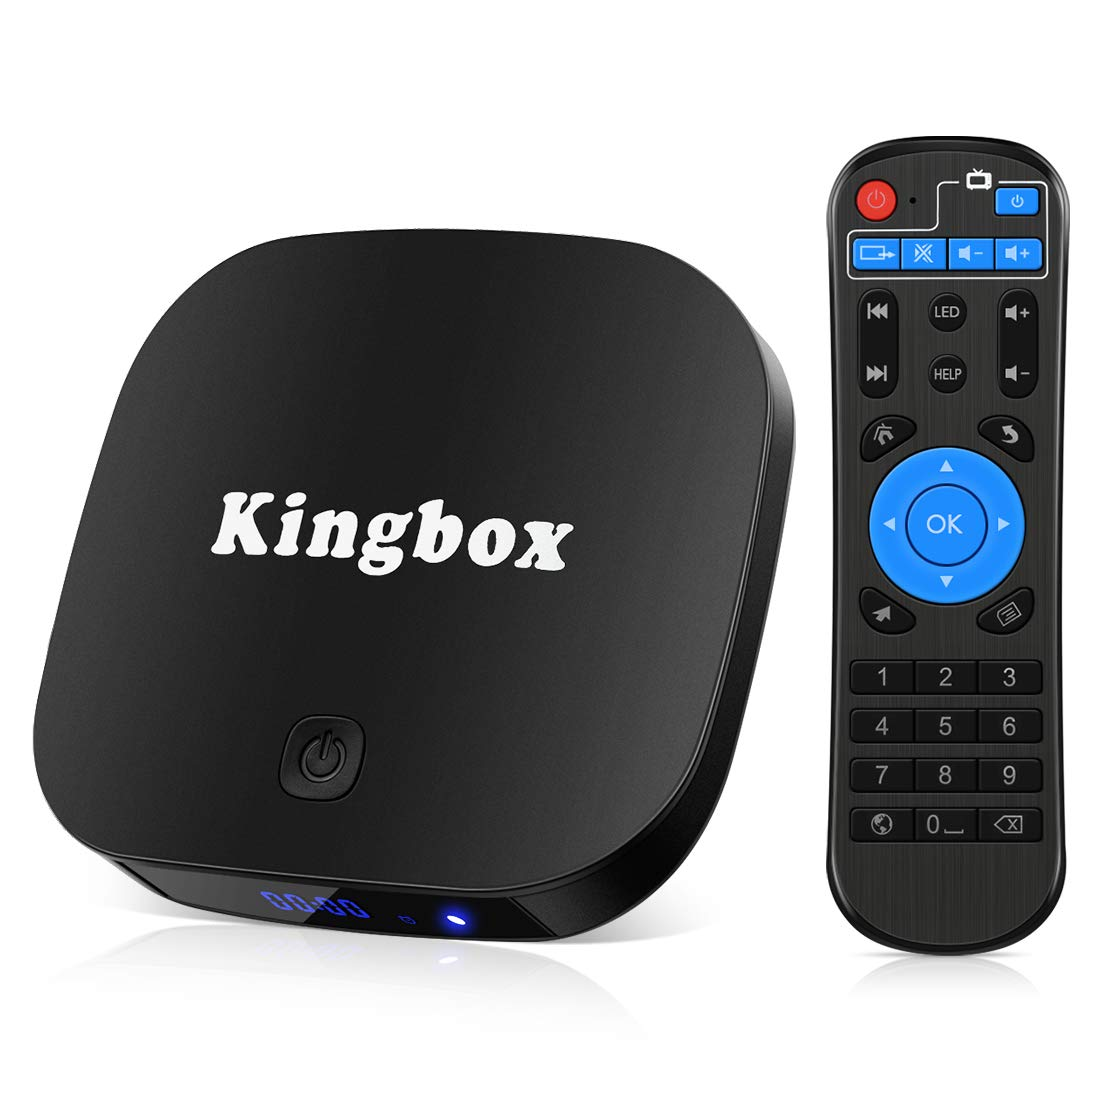 Kingbox (2018 Ultima versione) K1 Plus Android 7.1